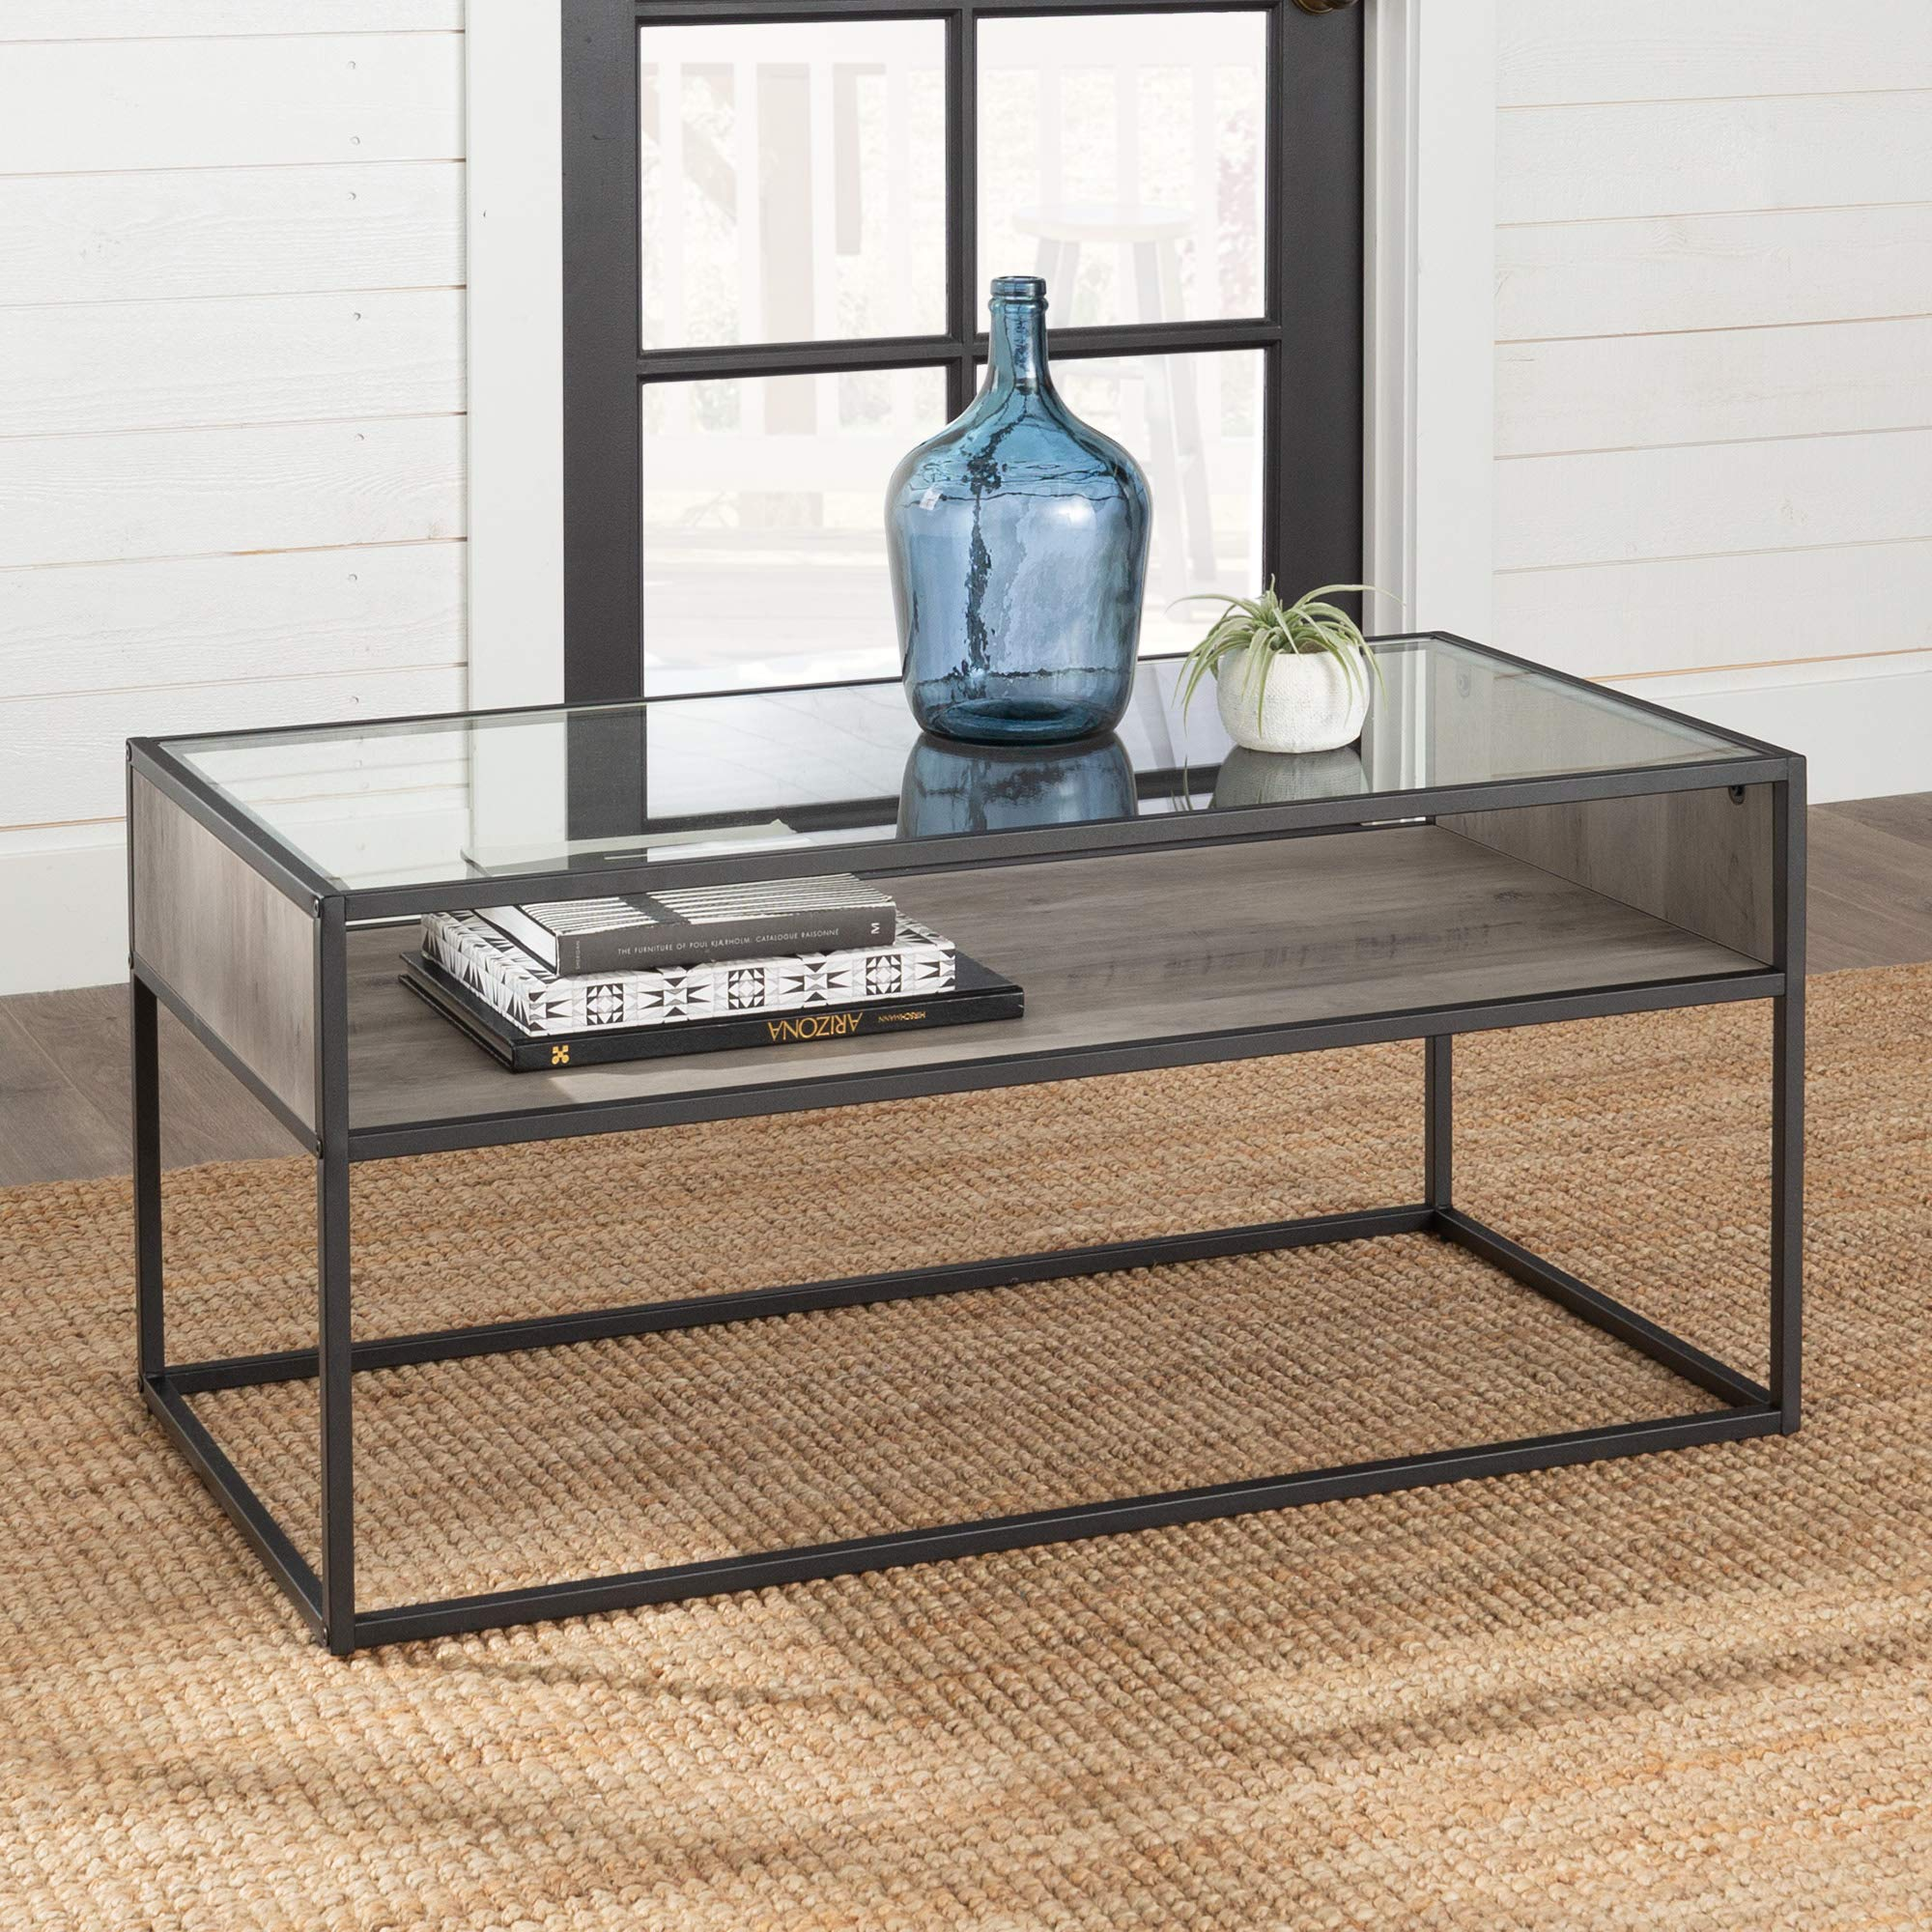 WE Furniture Industrial Modern Wood Rectangle Open Shelf Coffee Accent Table Living Room, 40 Inch, Grey by WE Furniture